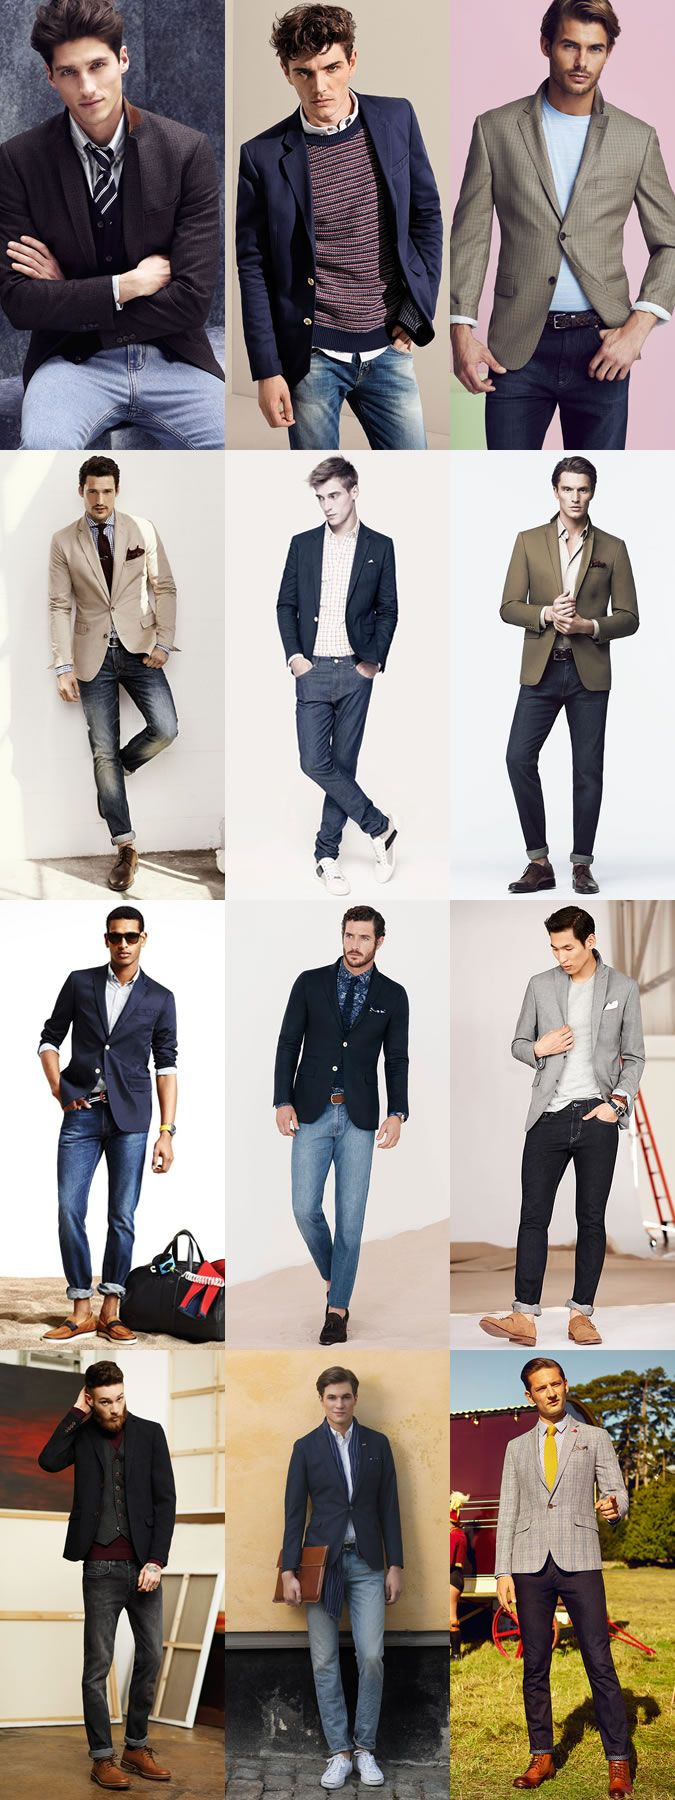 Great Contrasting Outfit Combinations : Blazer & Jeans Lookbook Inspiration